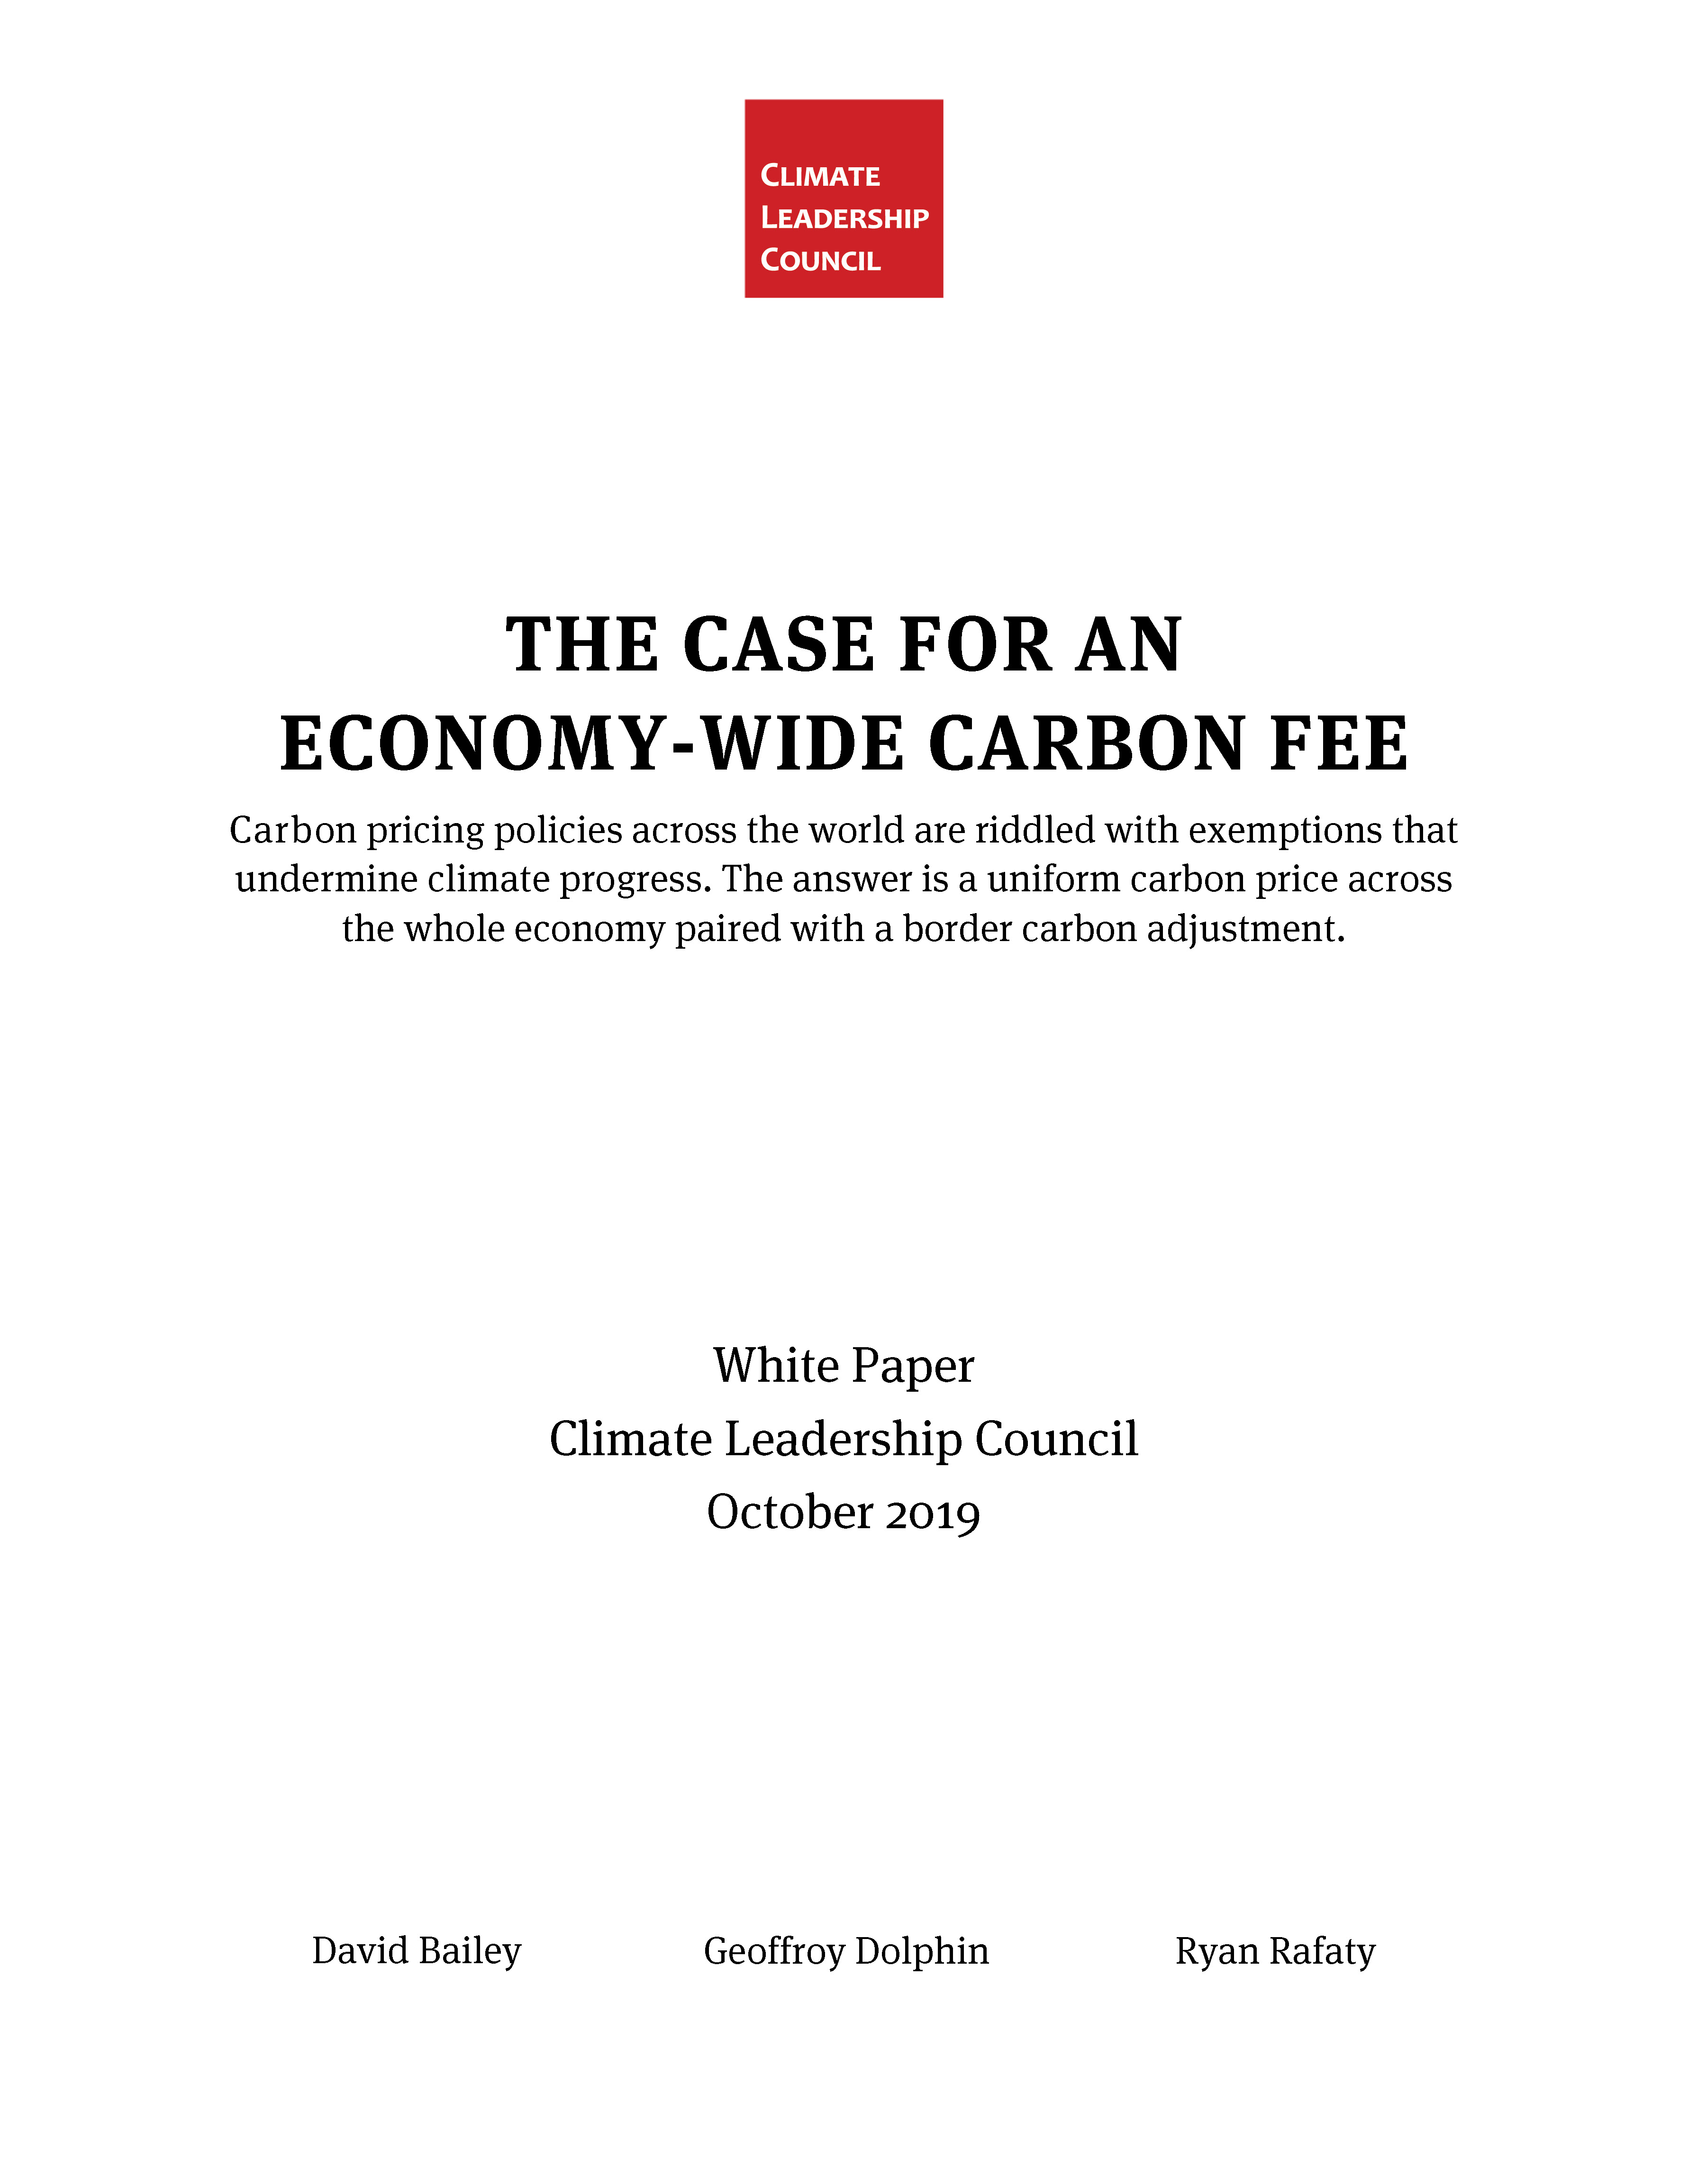 The Case For An Economy-Wide Carbon Fee_Page_01